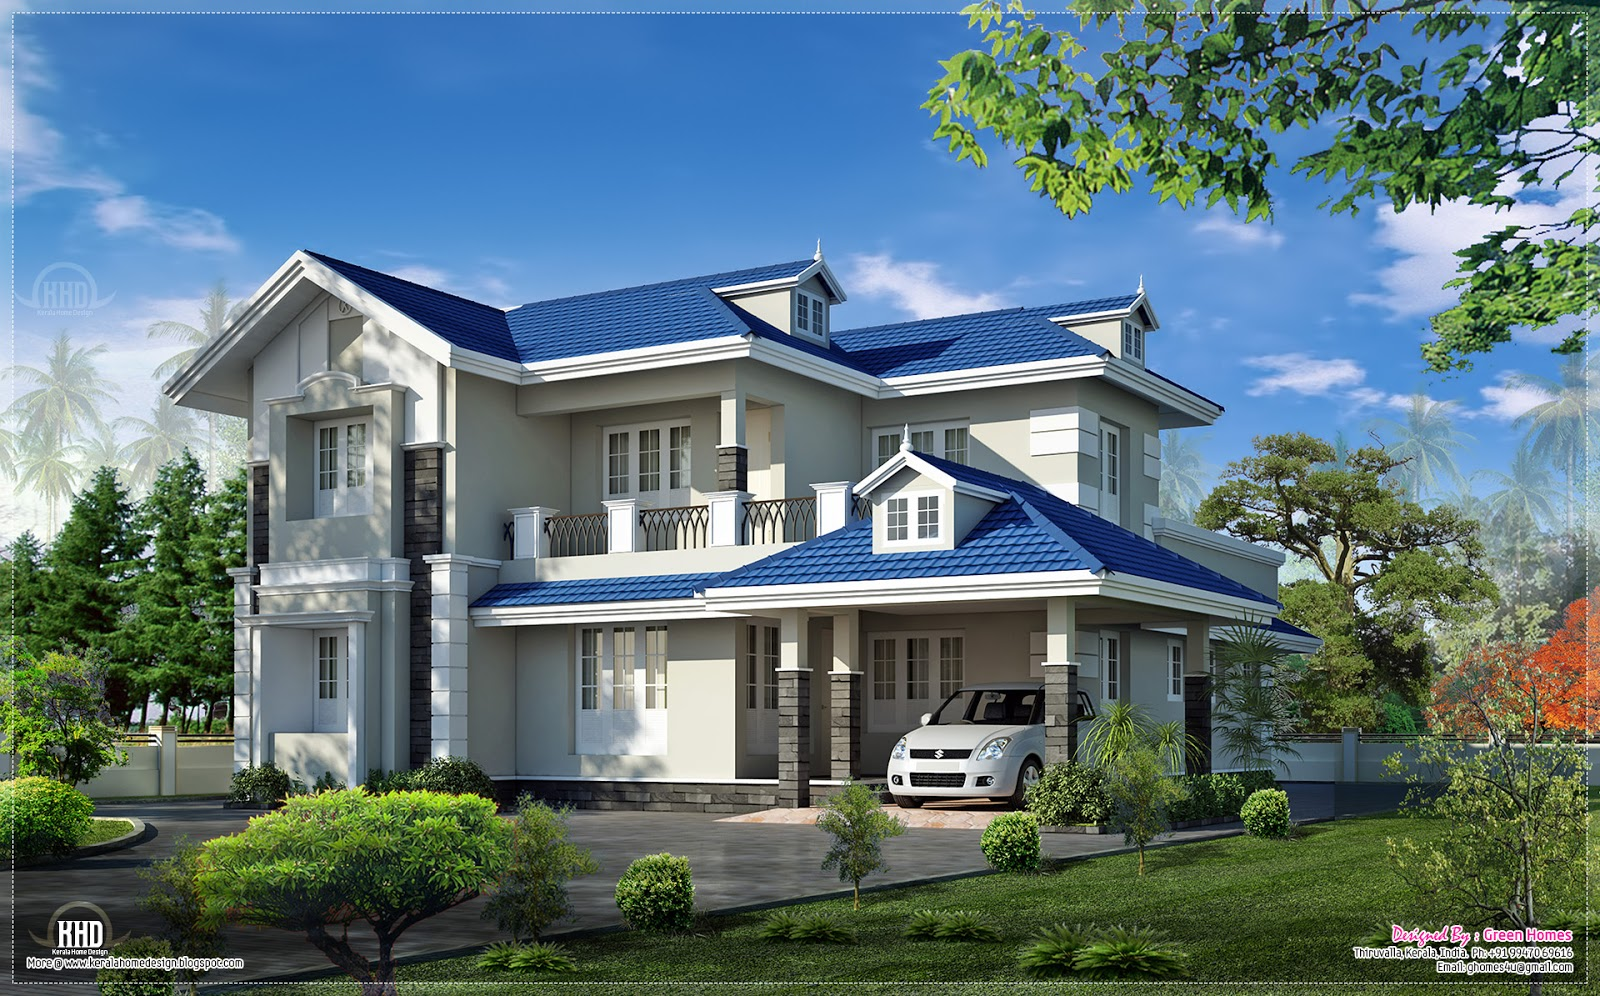 Beautiful 4 bedroom villa exterior house design plans for Beautiful house design